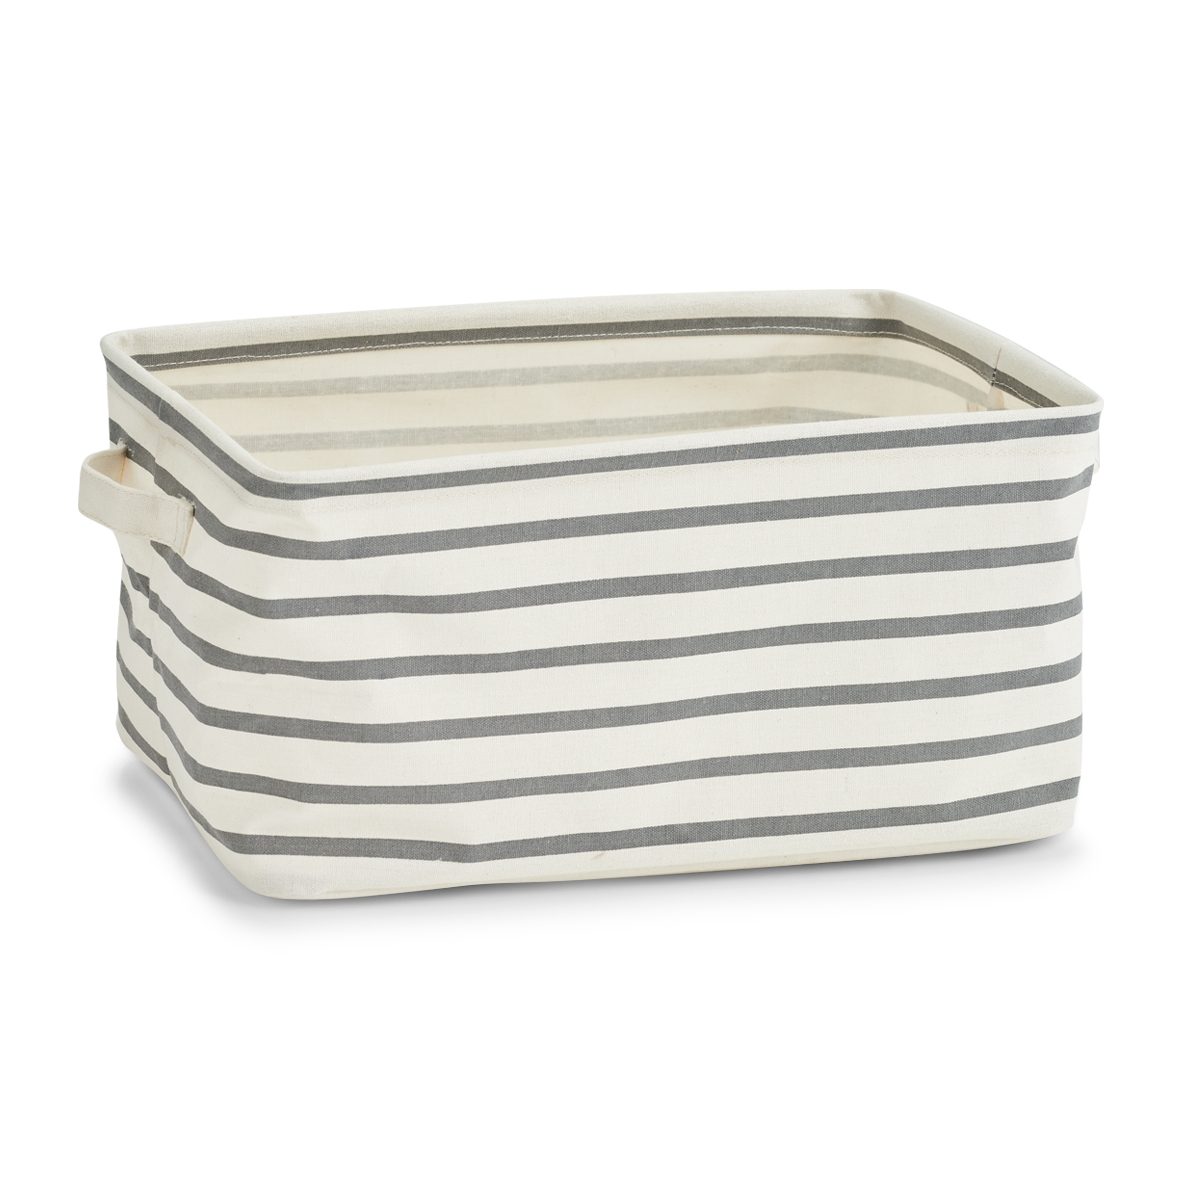 Cos pentru depozitare din panza, Grey III Stripes, l36xA25xH18 cm imagine